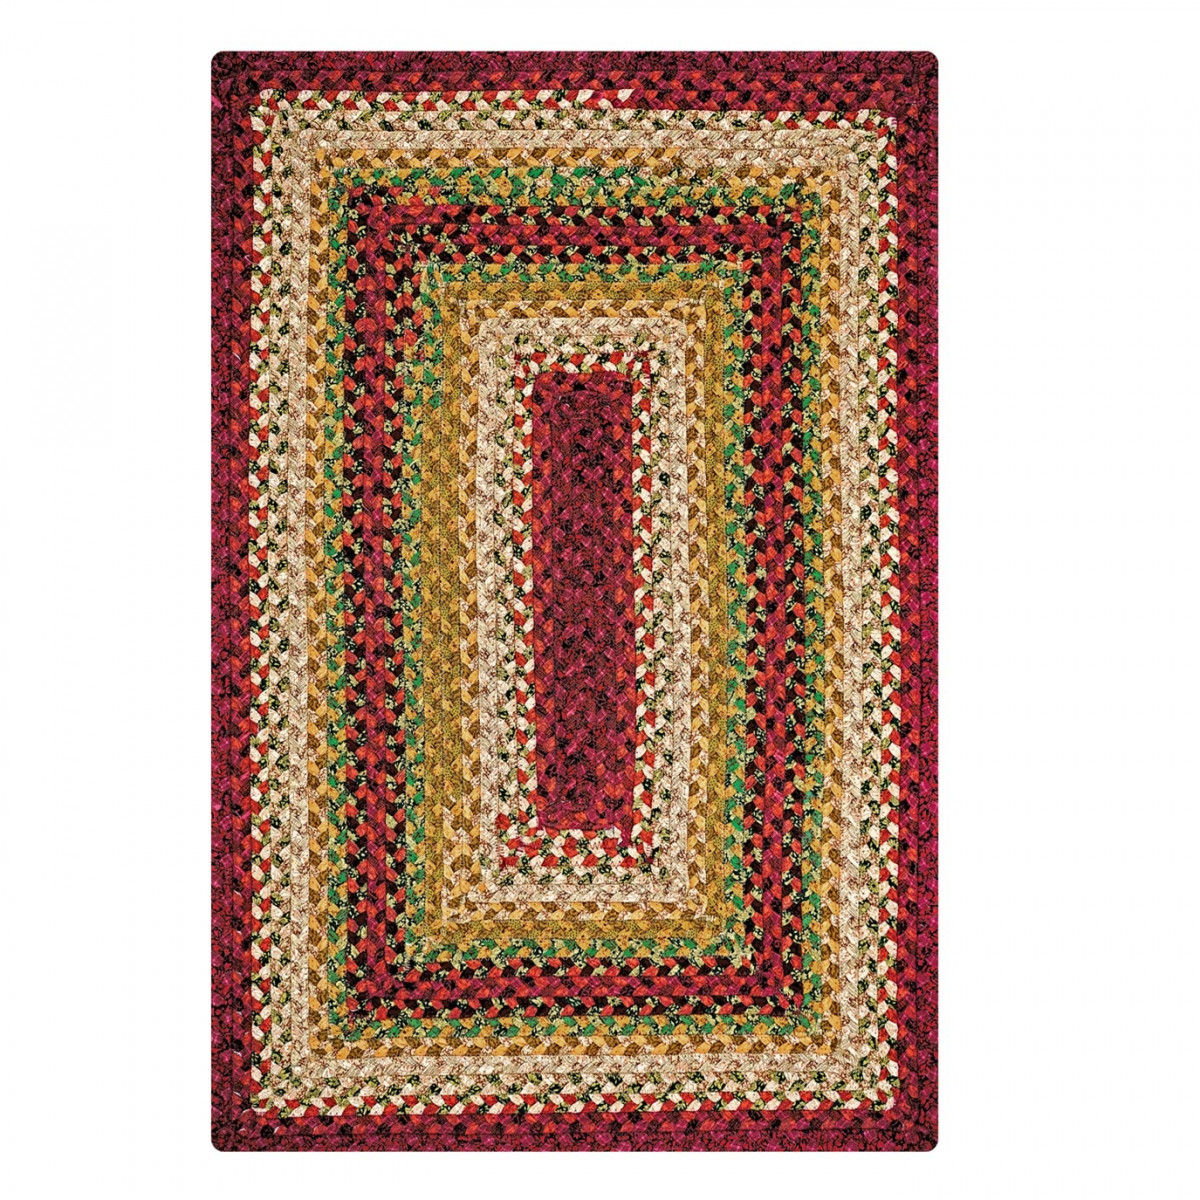 Online Rugs Buy Santa Fe Sunrise Multi Color Cotton Braided Rugs